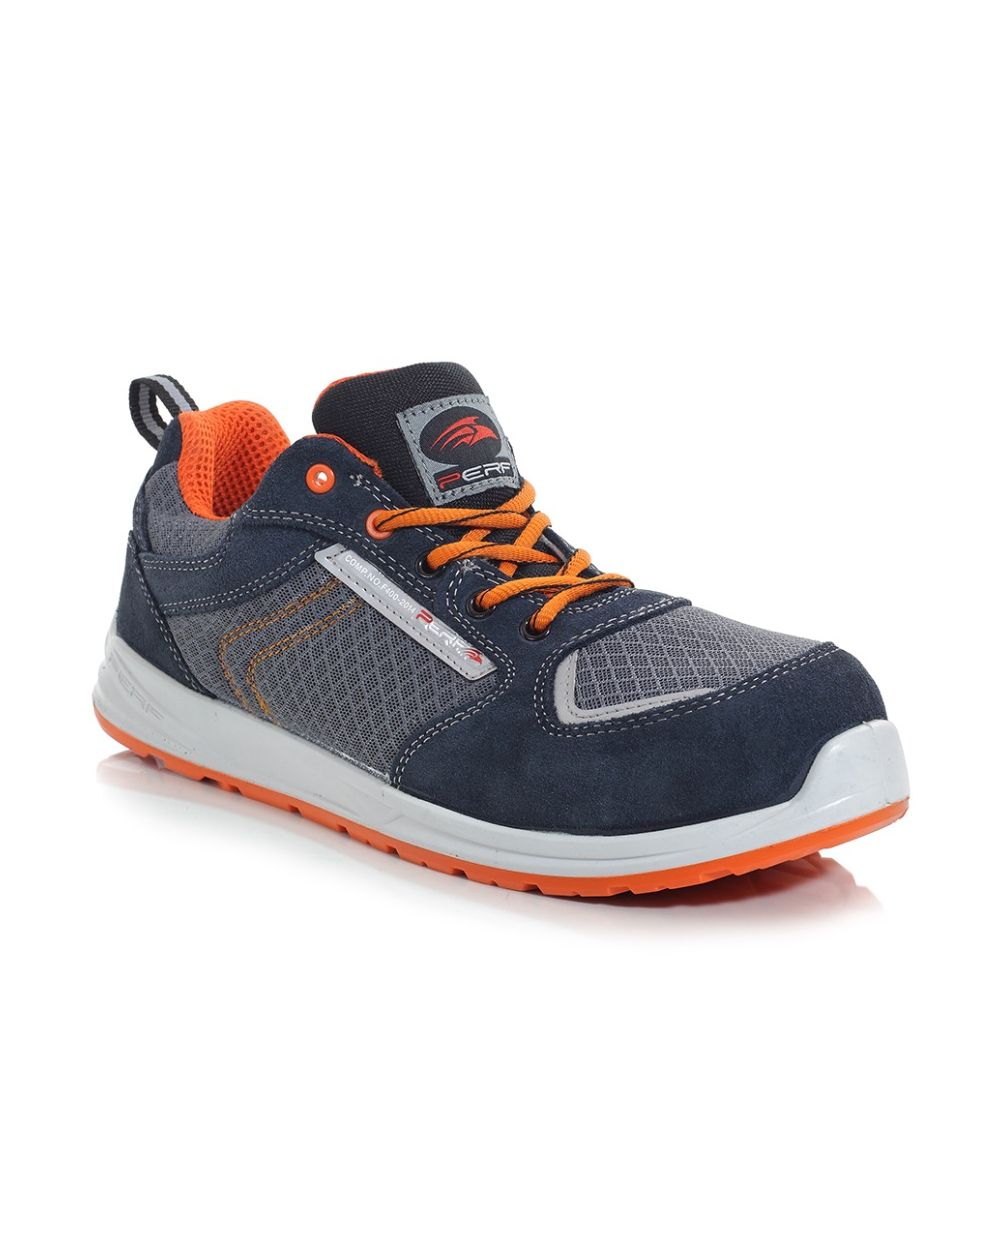 Tiger - Lightweight Non-Metal Trainer